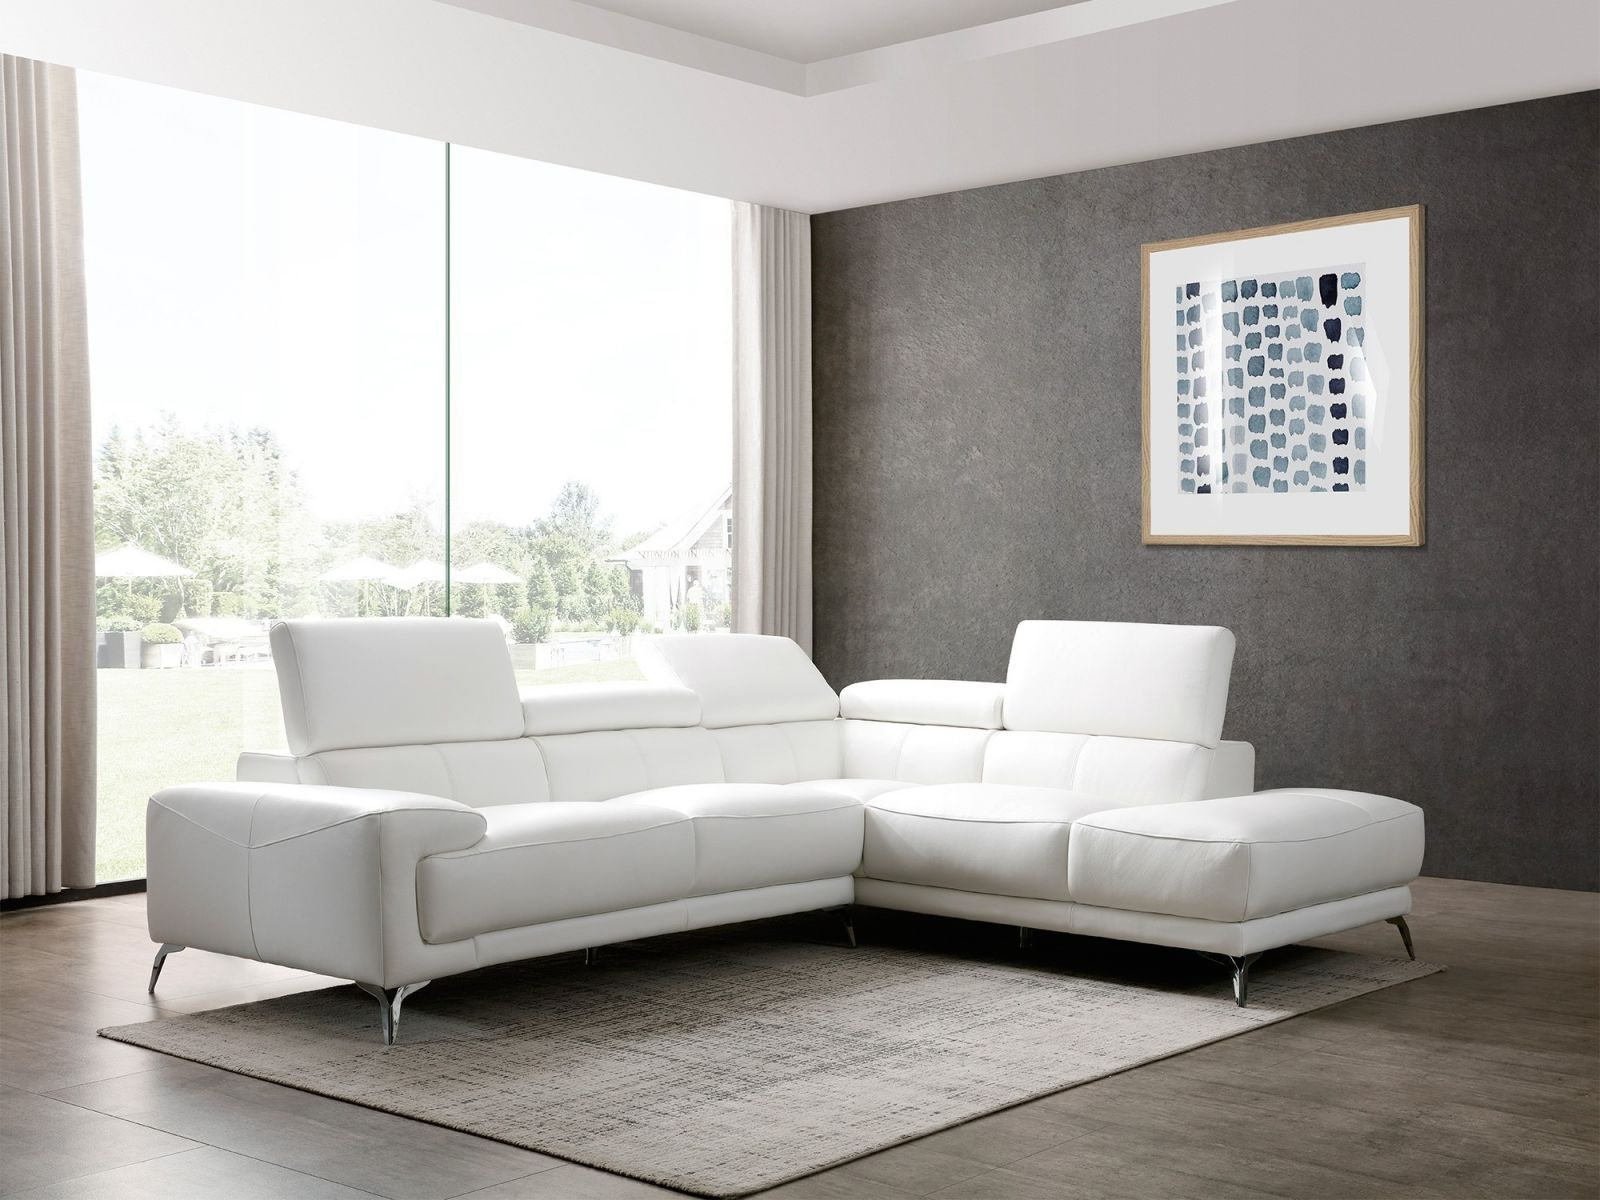 Sophia White Leather Modern Sectional inside Leather Sectional Modern